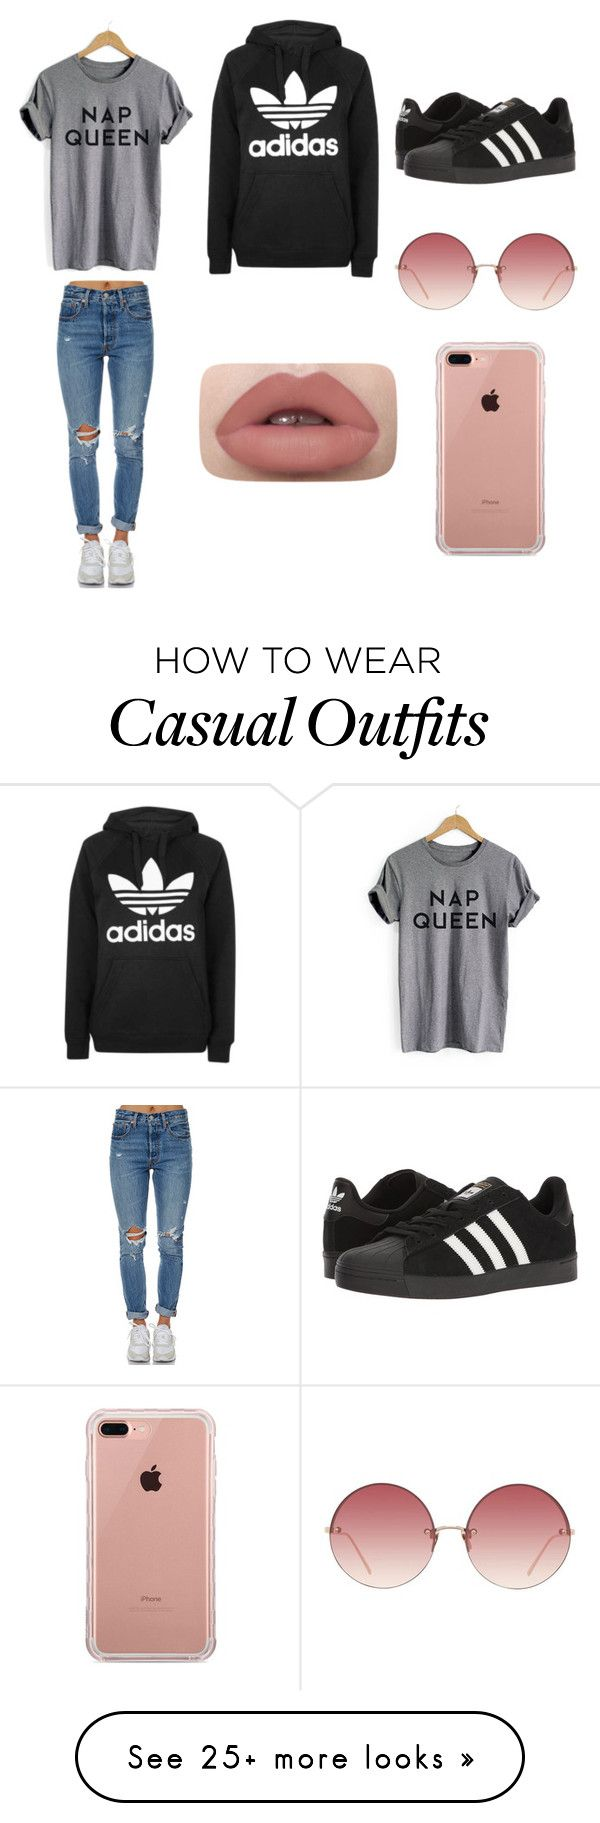 """Casual in style"" by maya-0113 on Polyvore featuring Topshop, Levi's, adidas, Linda Farrow and Belkin"